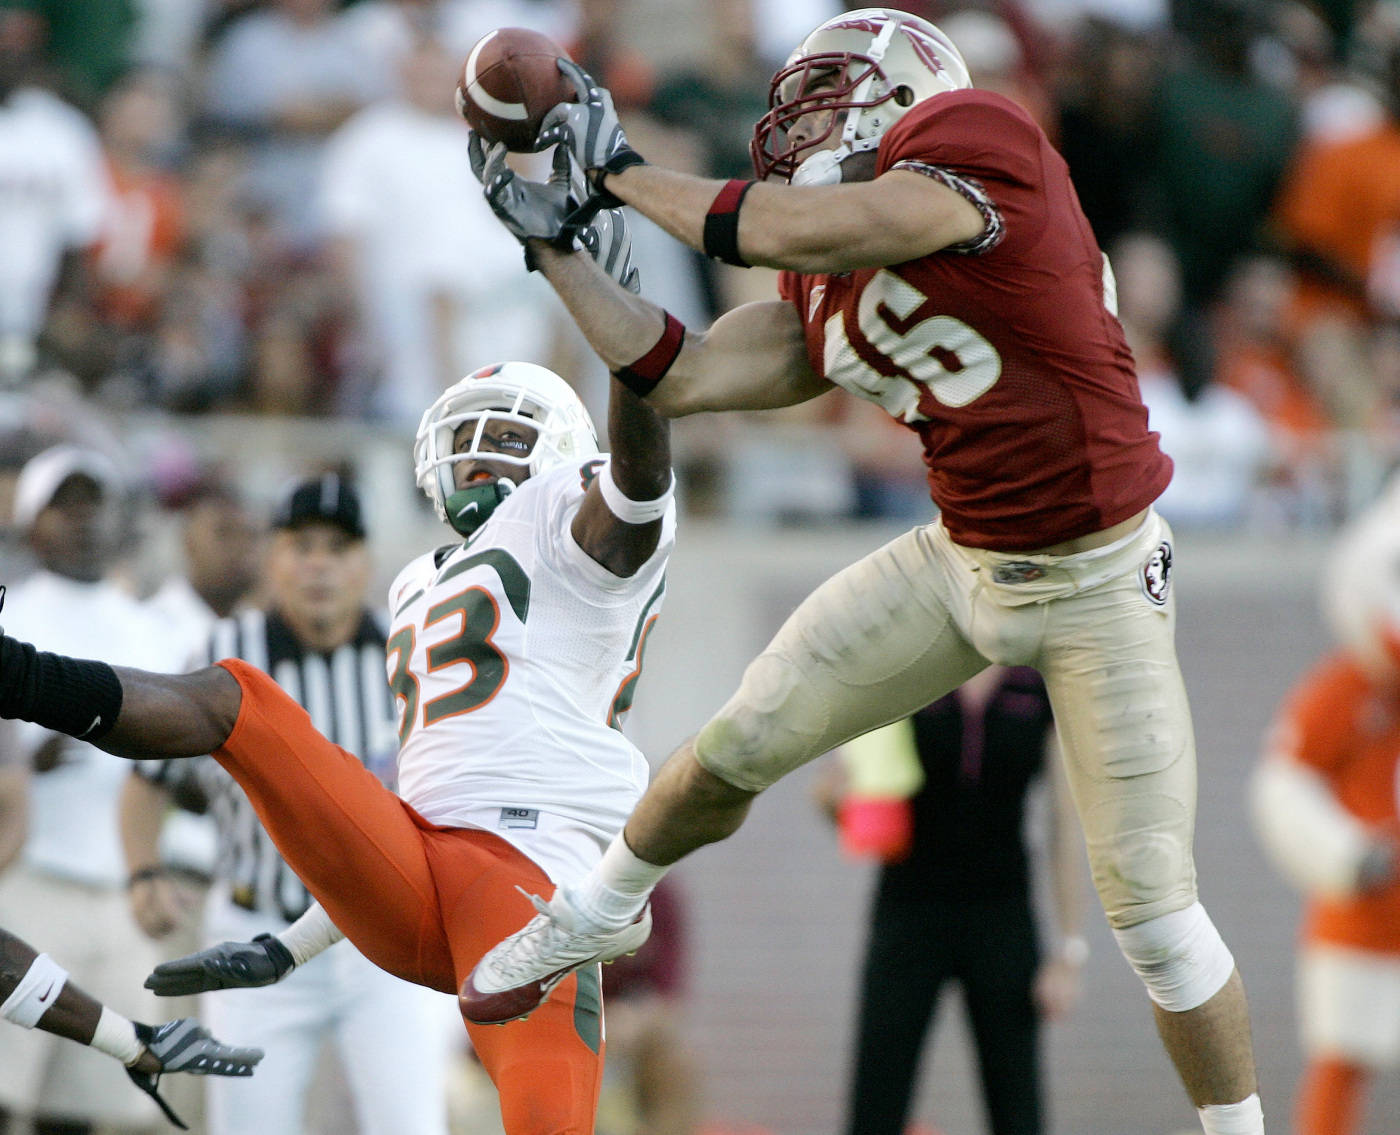 Florida State's Anthony Houllis, right, intercepts a pass intended for Miami's Sam Shields during the third quarter. (AP Photo/Phil Coale)